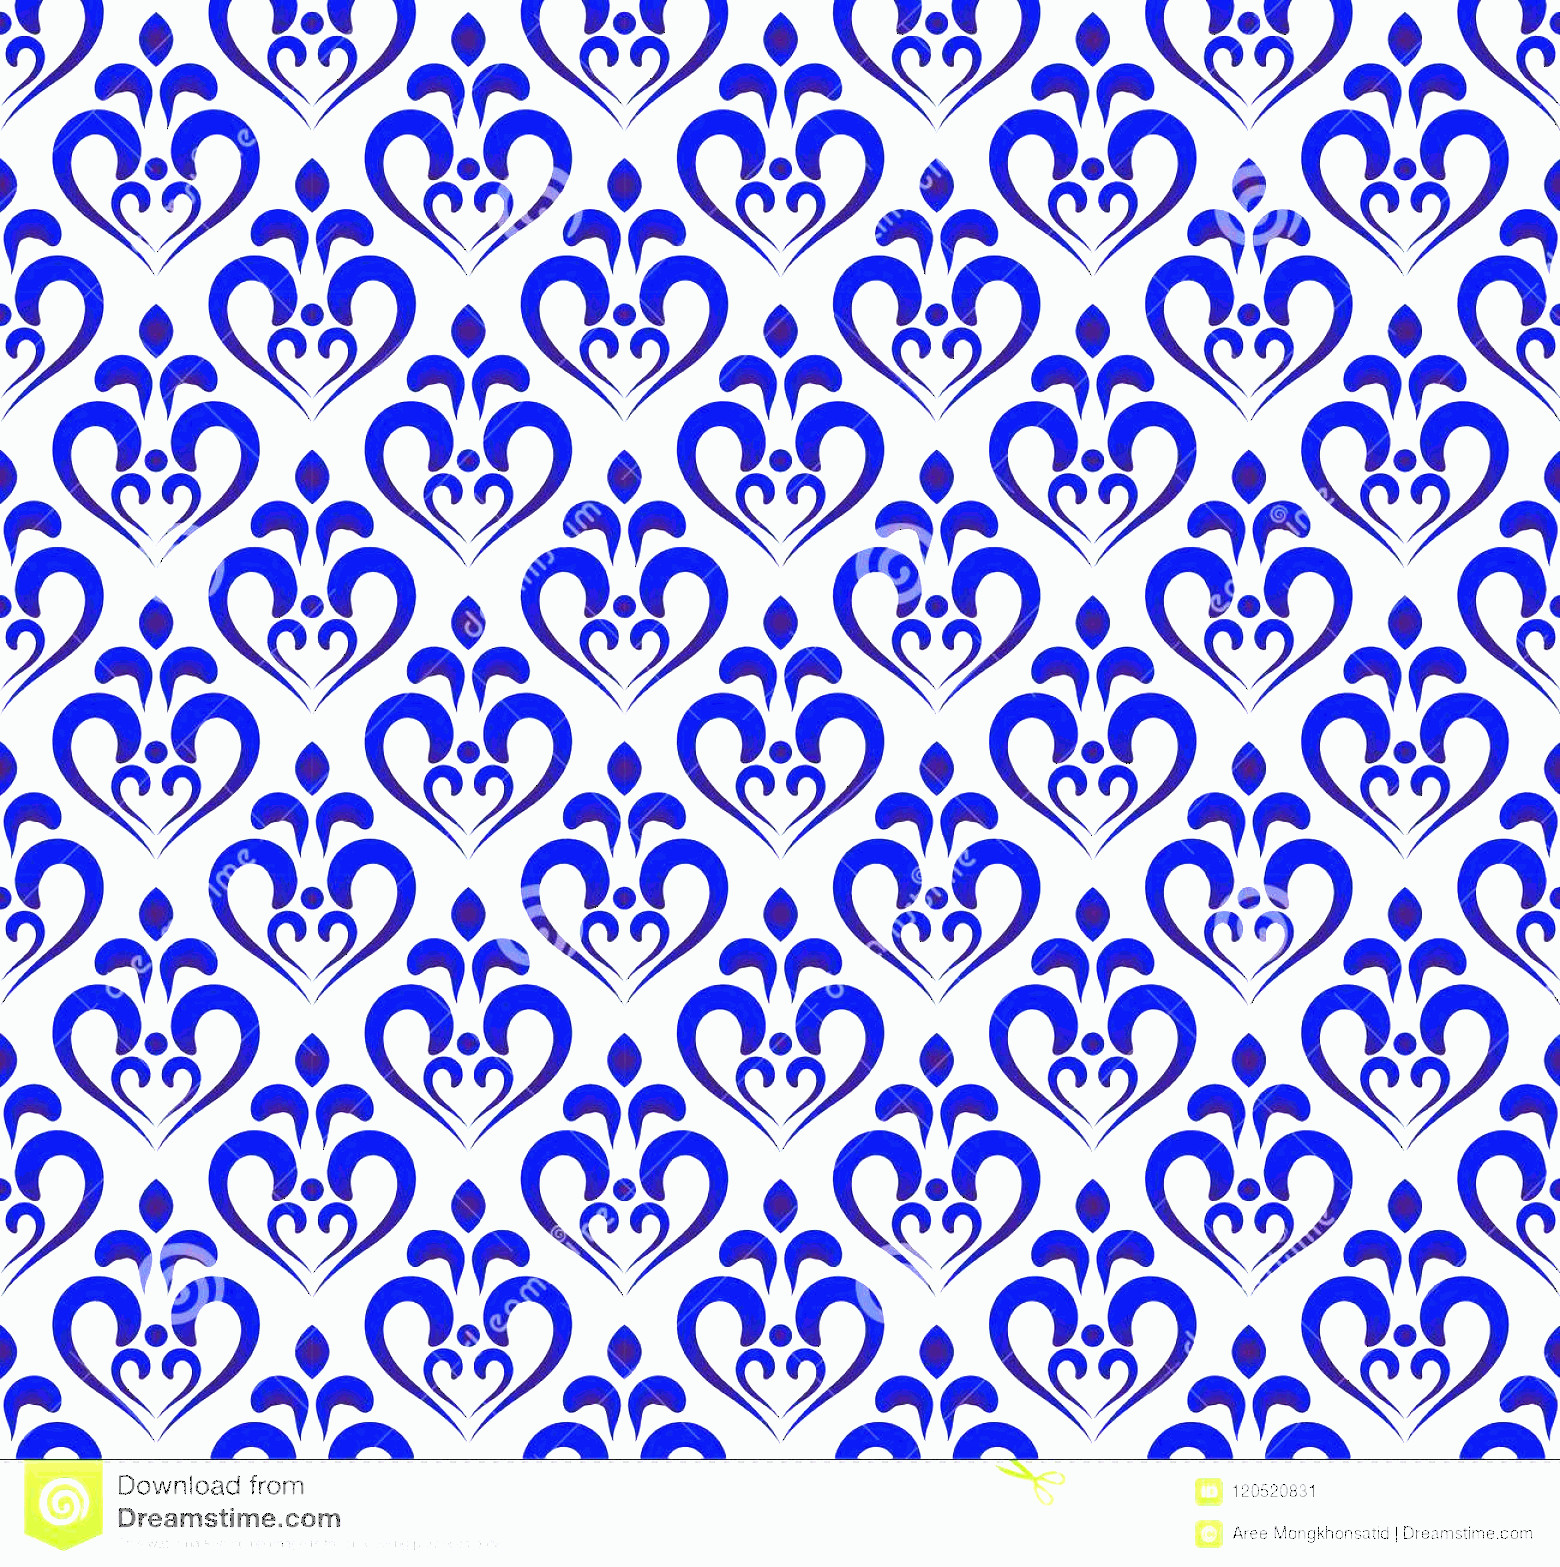 Blue And White Damask Vectors: Blue White Damask Pattern Abstract Floral Ornament Backdrop Style Seamless Royal Baroque Background Design Porcelain Image